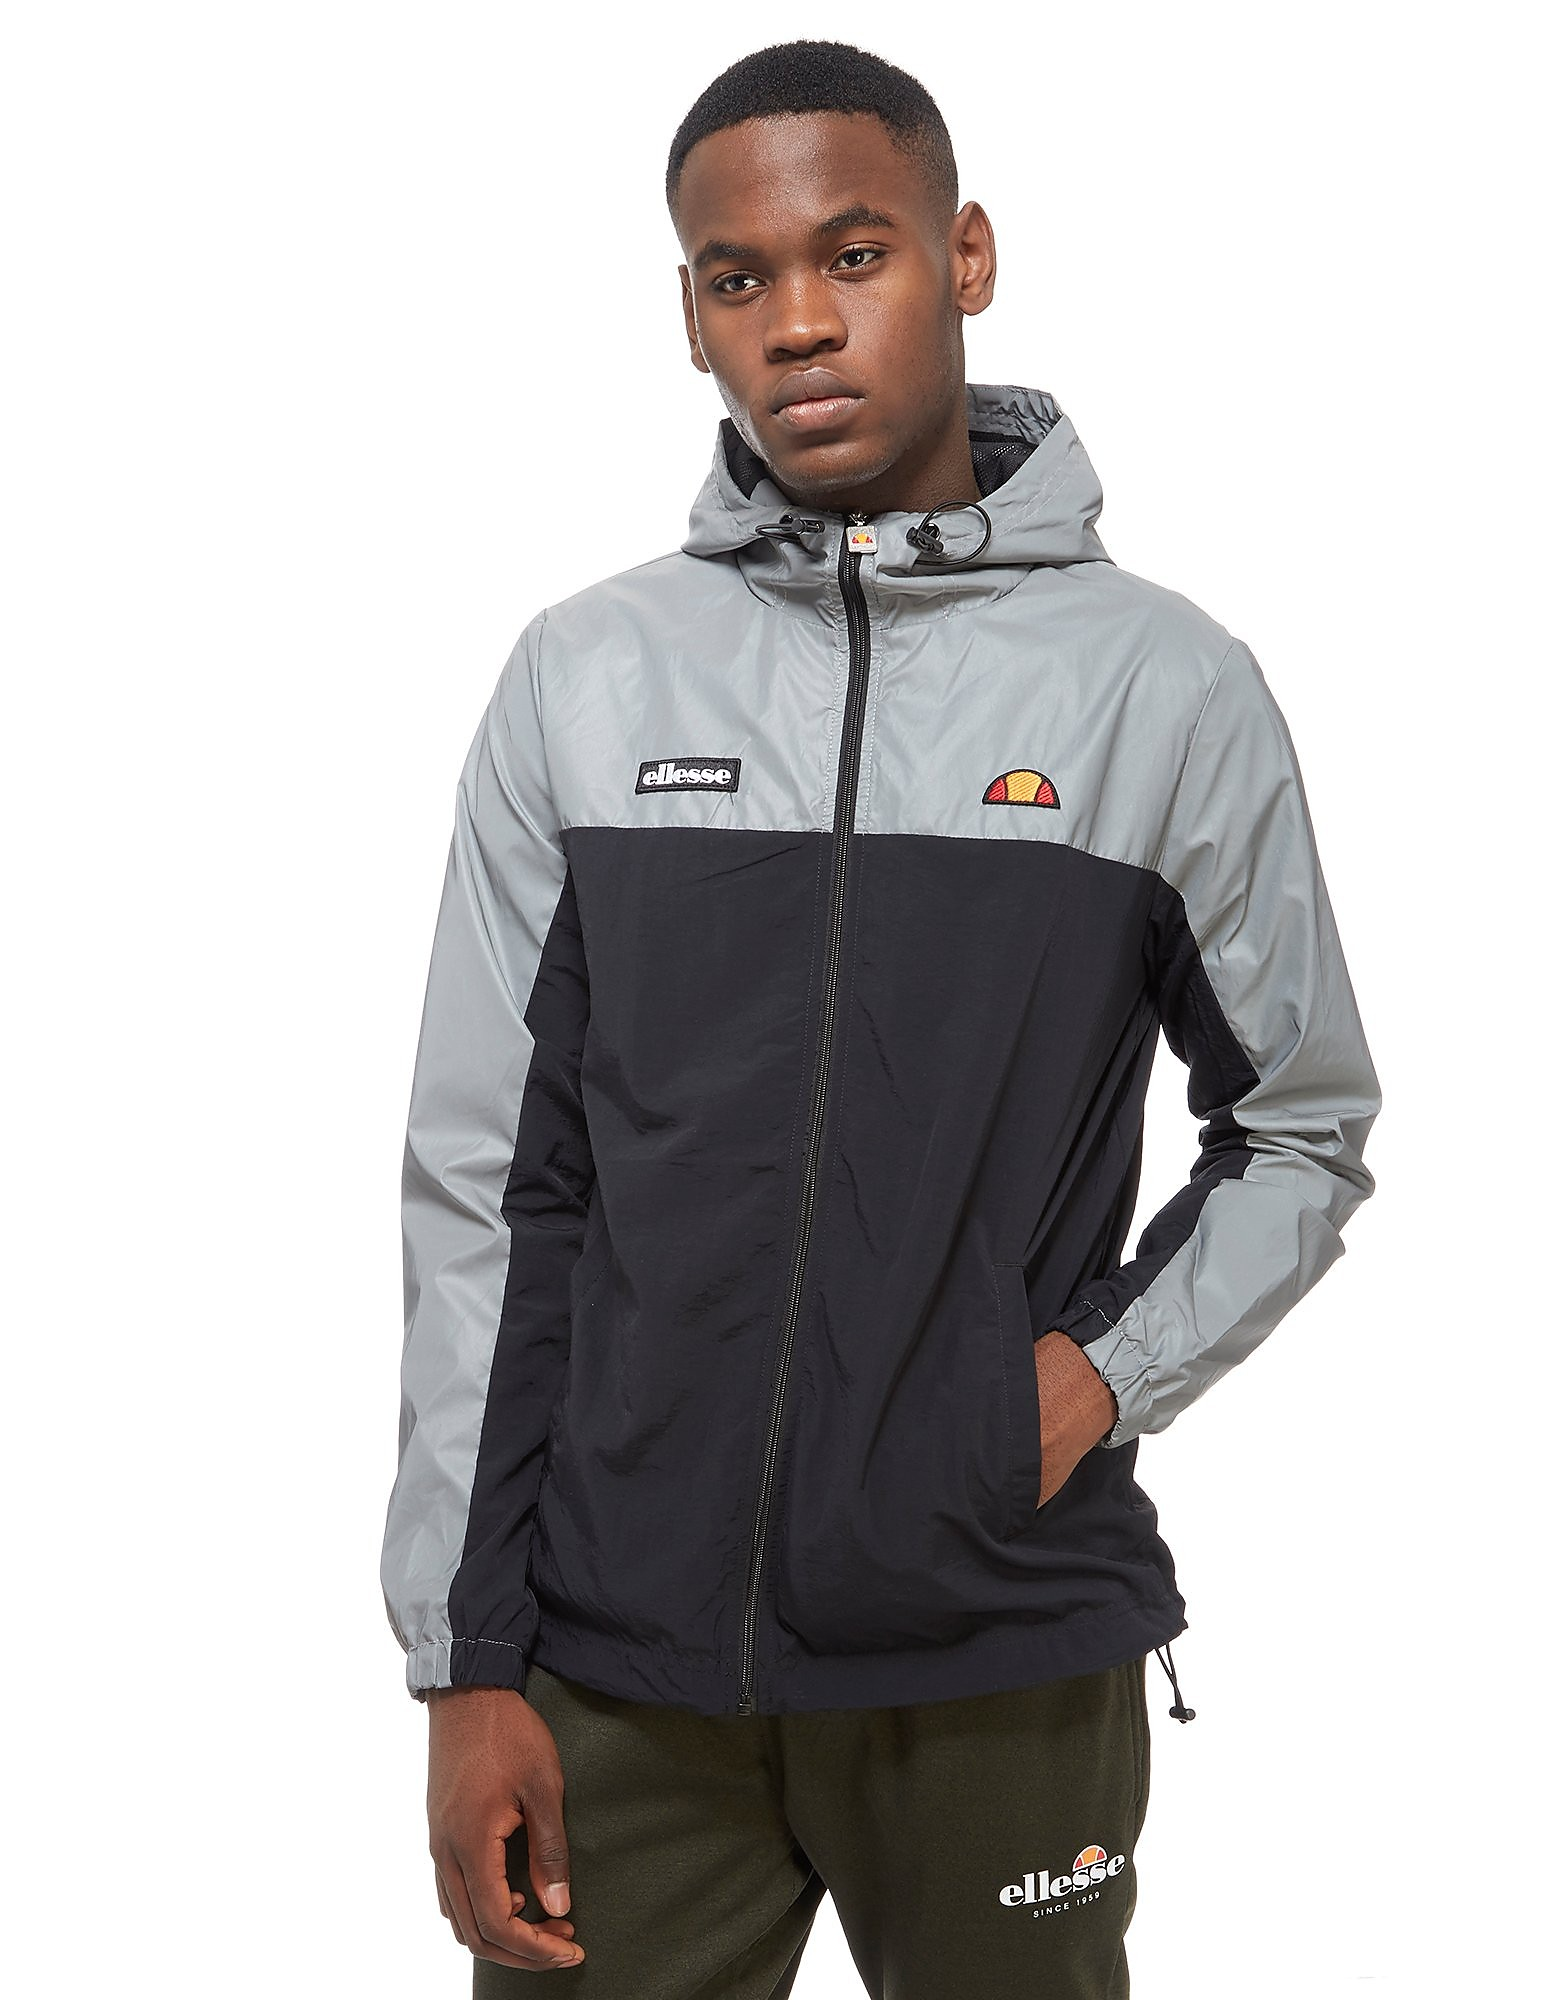 Ellesse Ervero Reflective Hooded Jacket